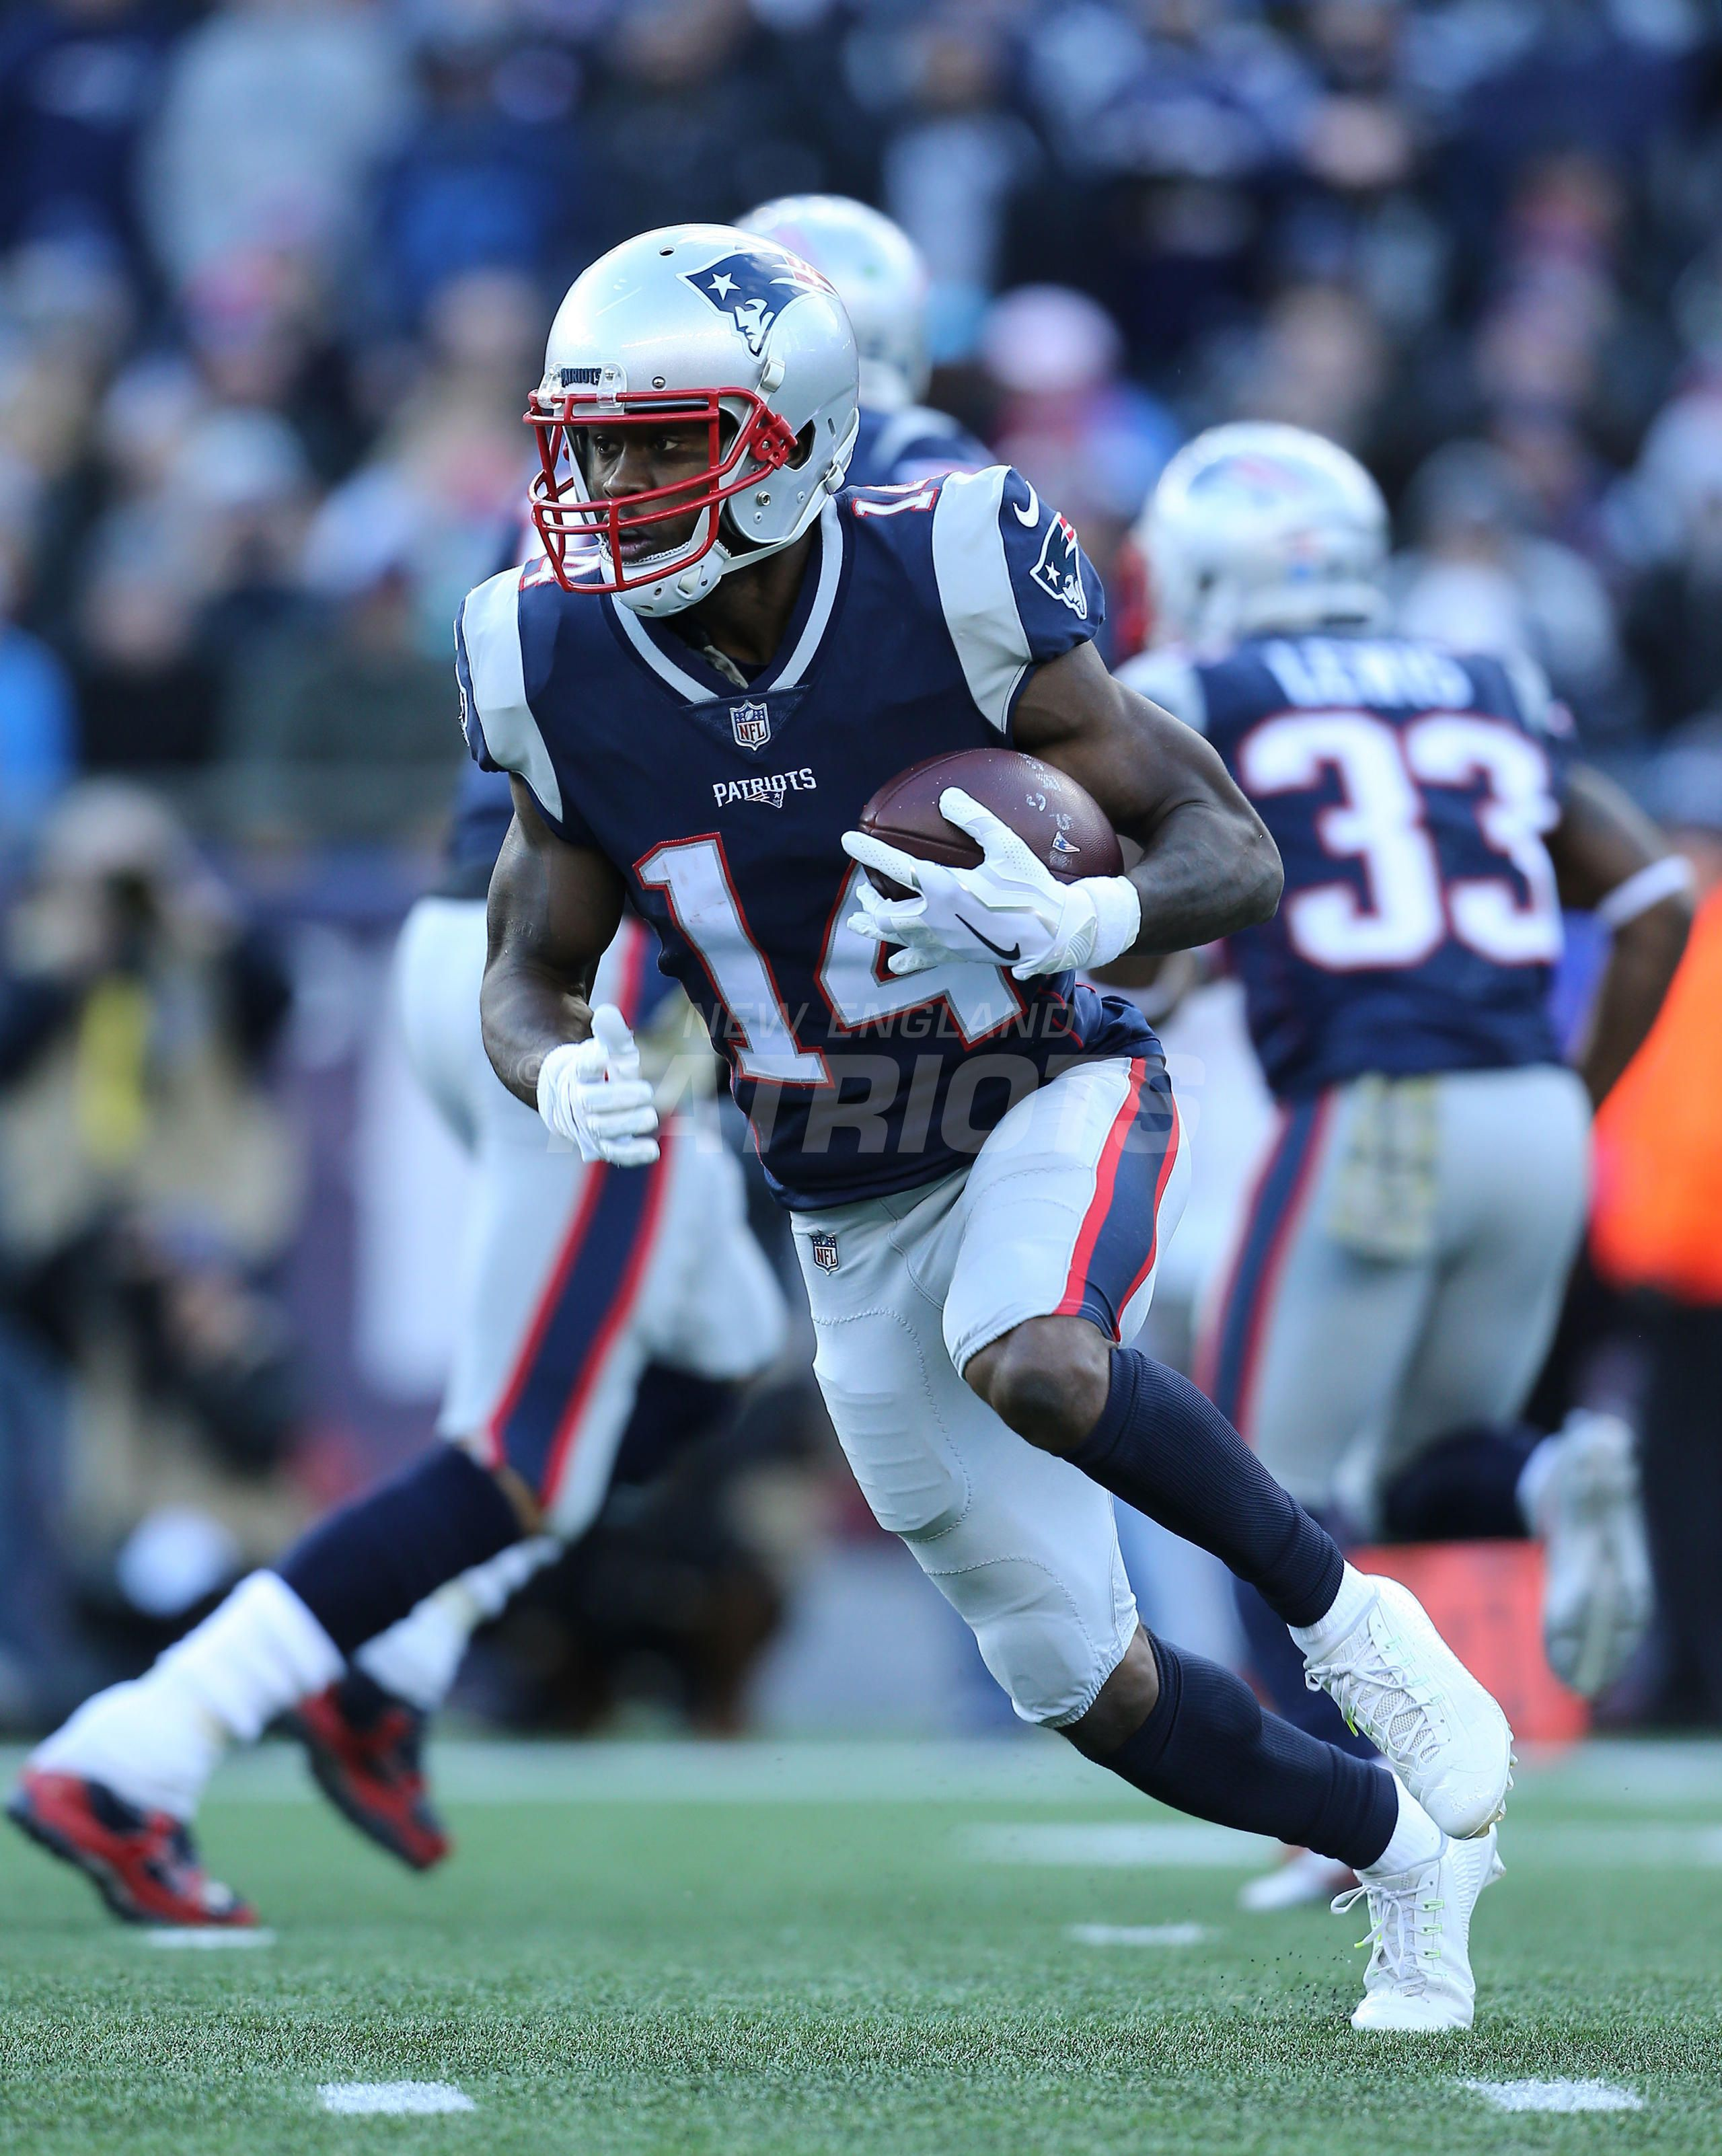 Silverman S Best Presented By Carmax Patriots Dolphins 11 26 Patriots Dolphins New England Patriots Patriots